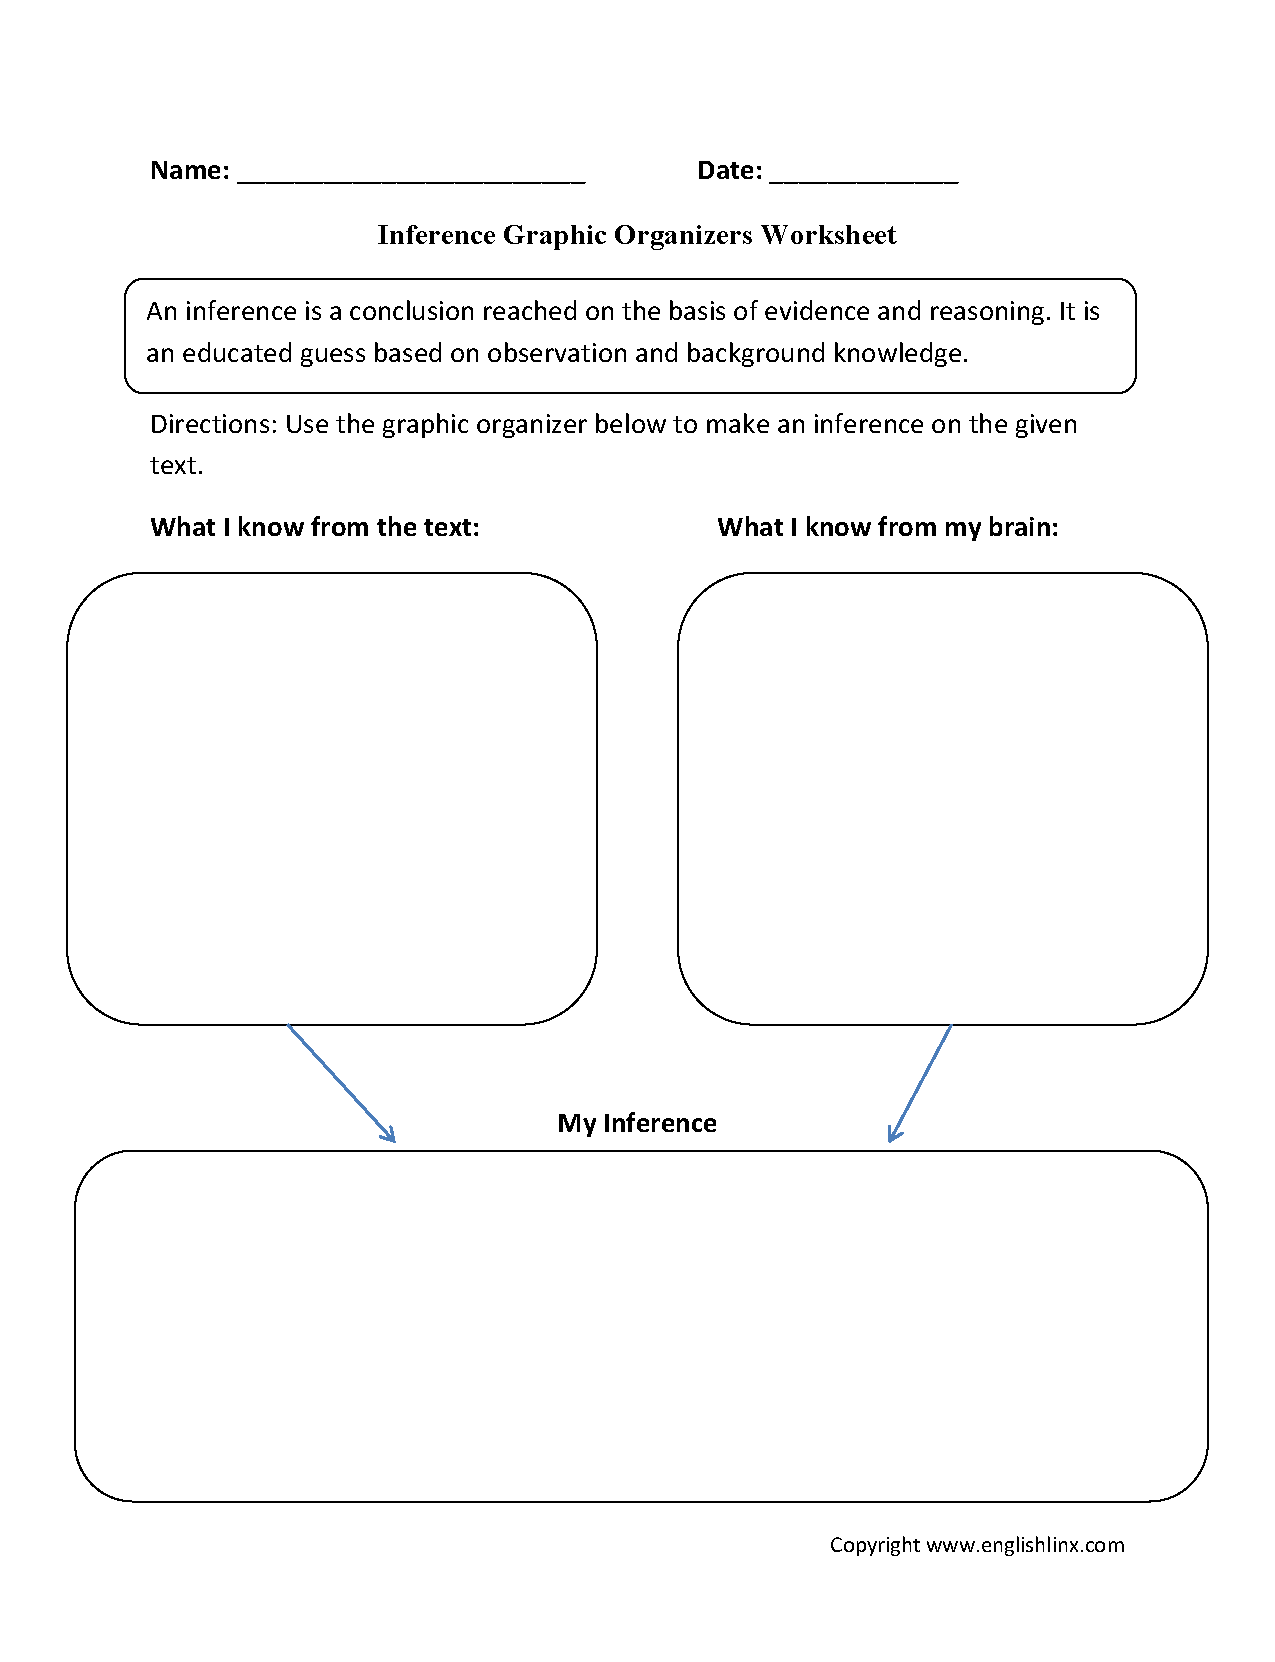 englishlinx | graphic organizers worksheets, Powerpoint templates